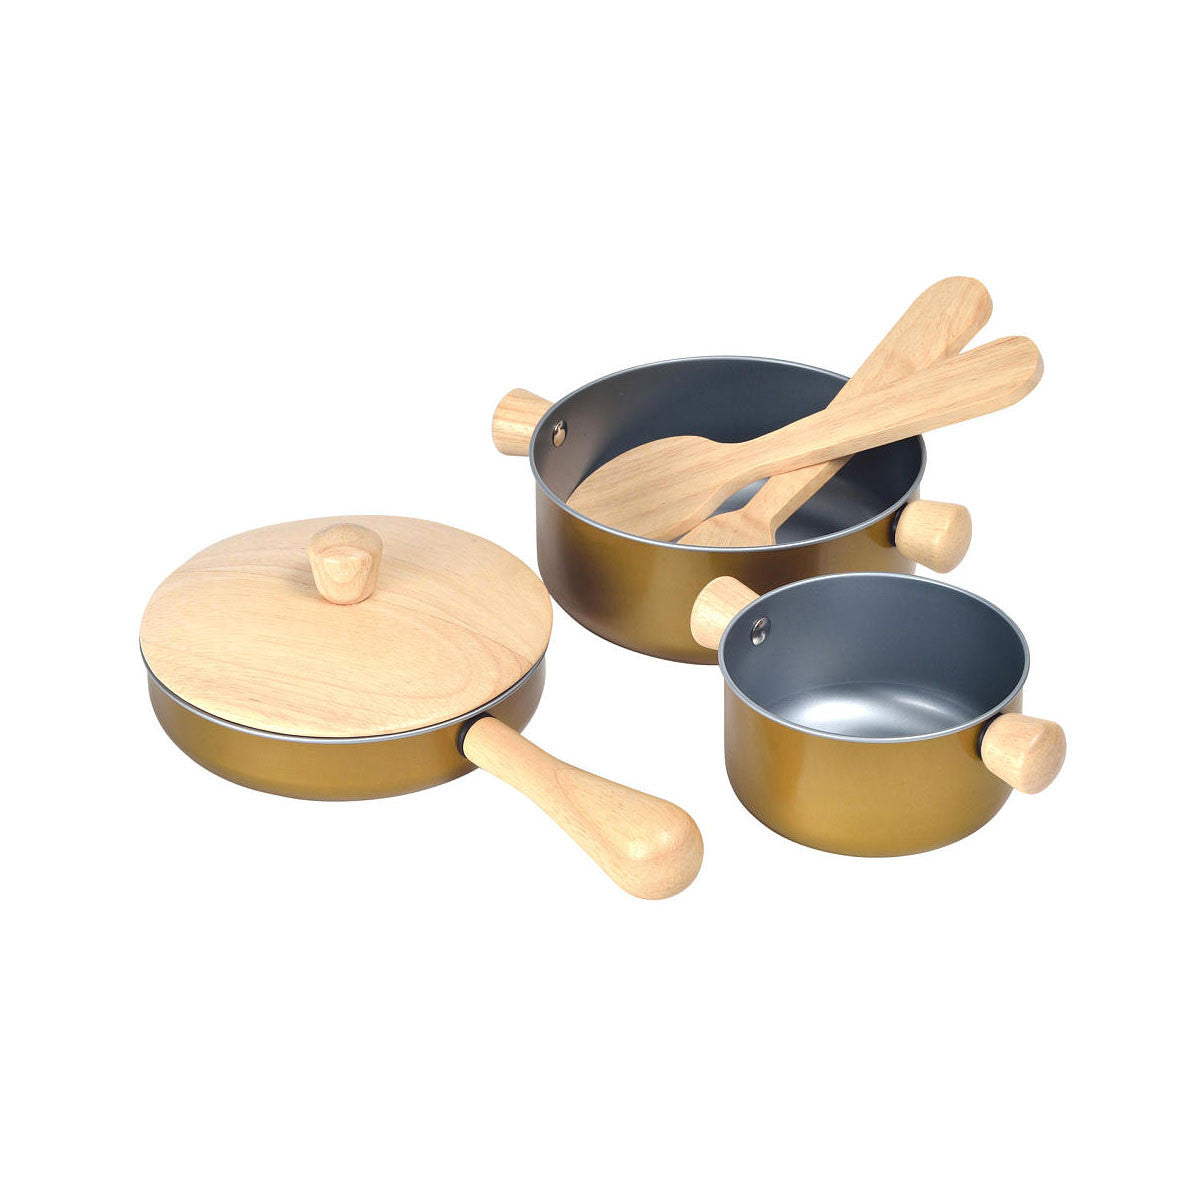 Plan Toys Cooking Utensils PlanToys Toy Kitchens & Play Food at Little Earth Nest Eco Shop